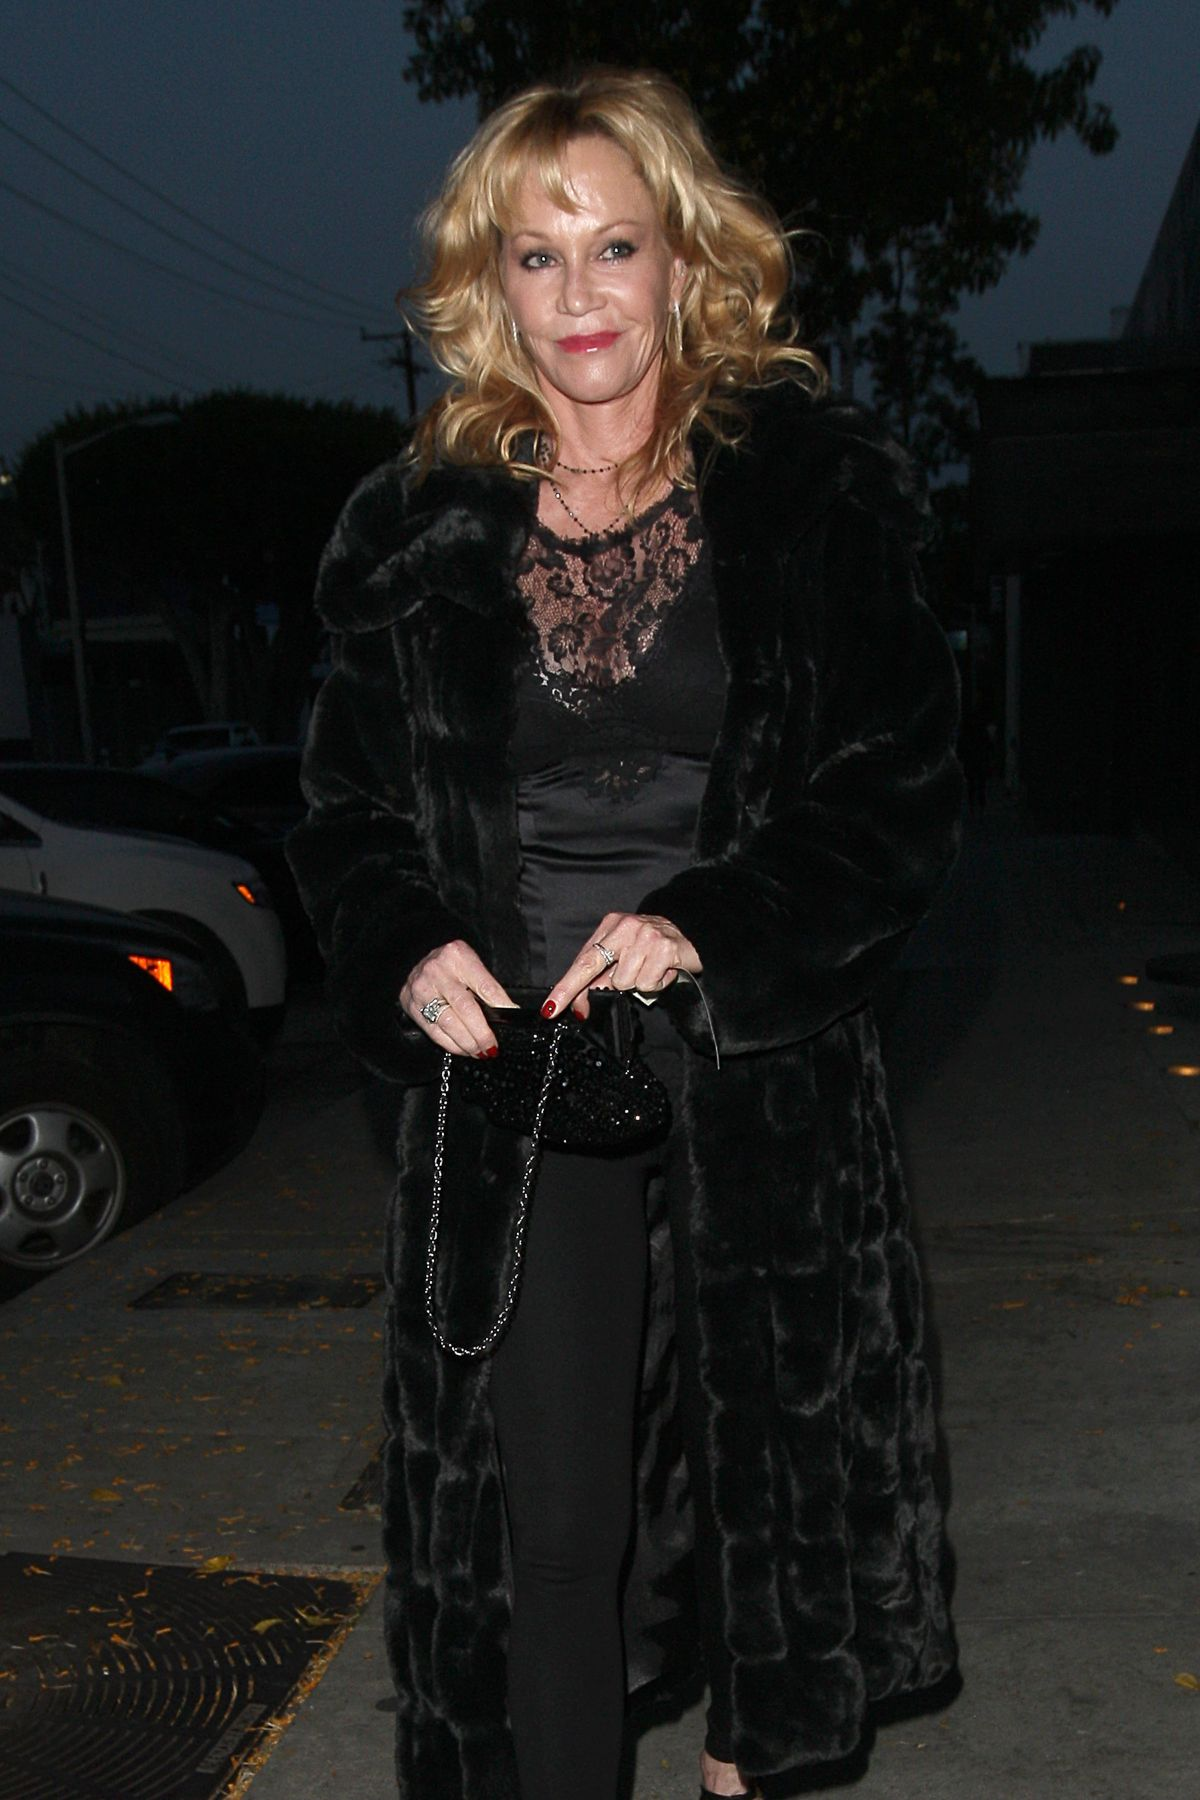 MELANIE GRIFDITH Night Out in West Hollywood 04/23/2015